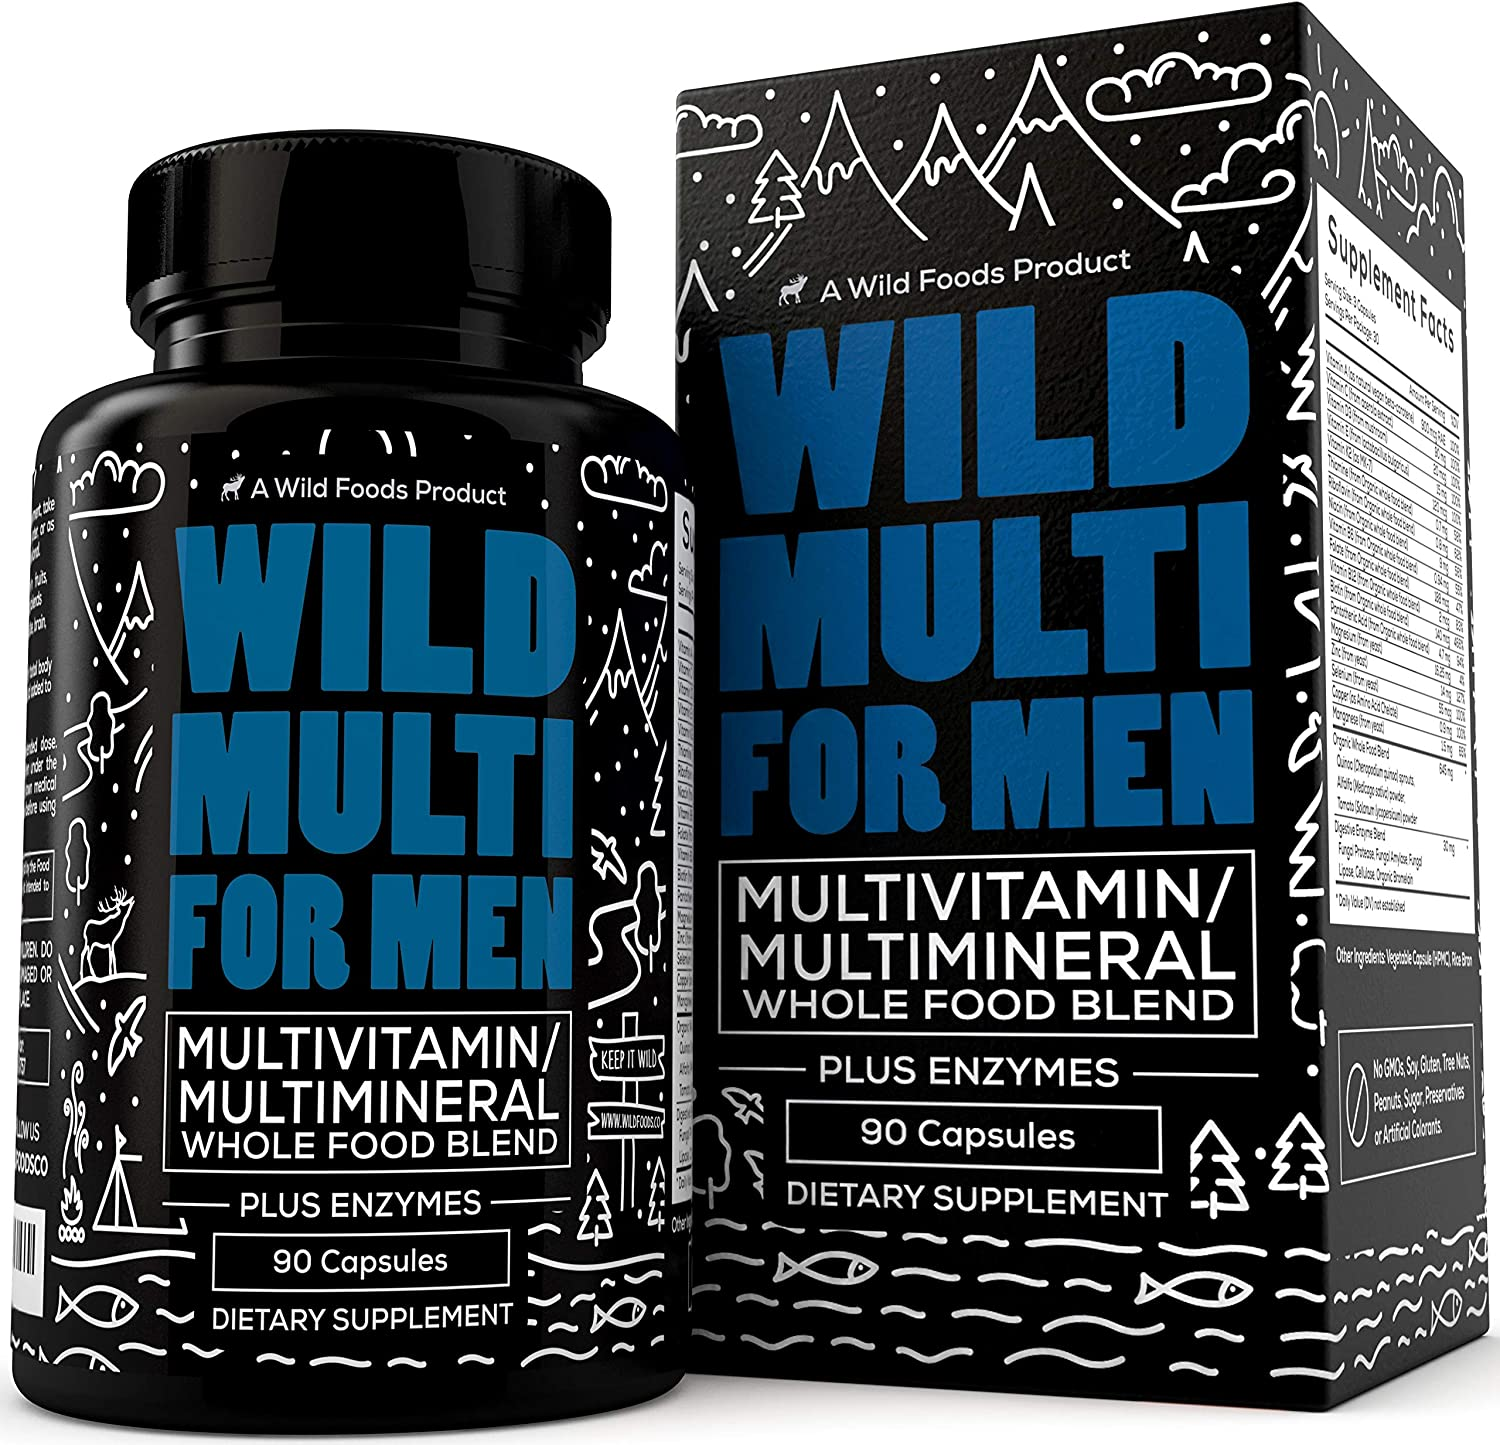 Wild Organic Multivitamin for Men - Daily Whole Food Multivitamin with 20+ Superfood Fruits + Veggies - Essential Vitamins & Minerals for Everyday Health - Non GMO & Gluten Free - 90 Capsules